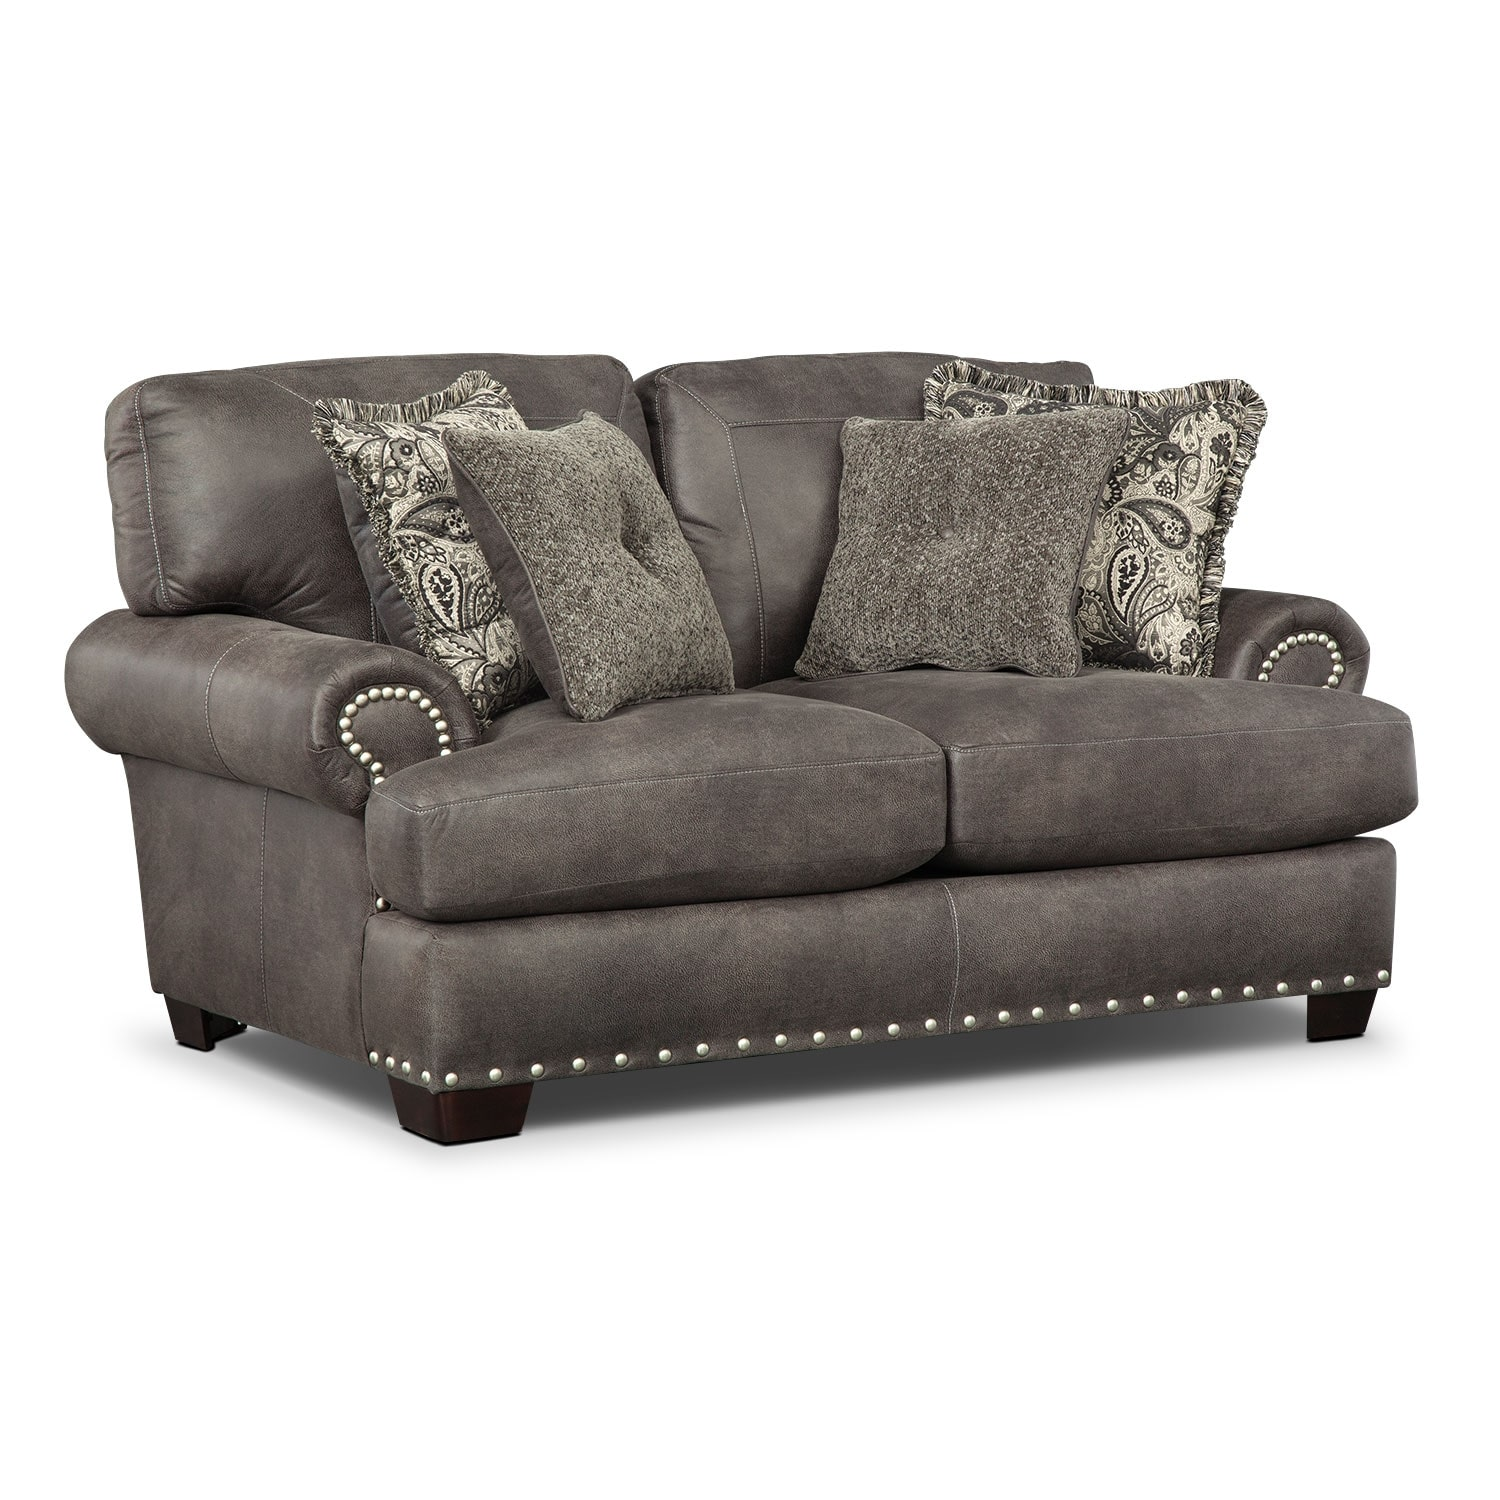 Burlington Loveseat - Steel